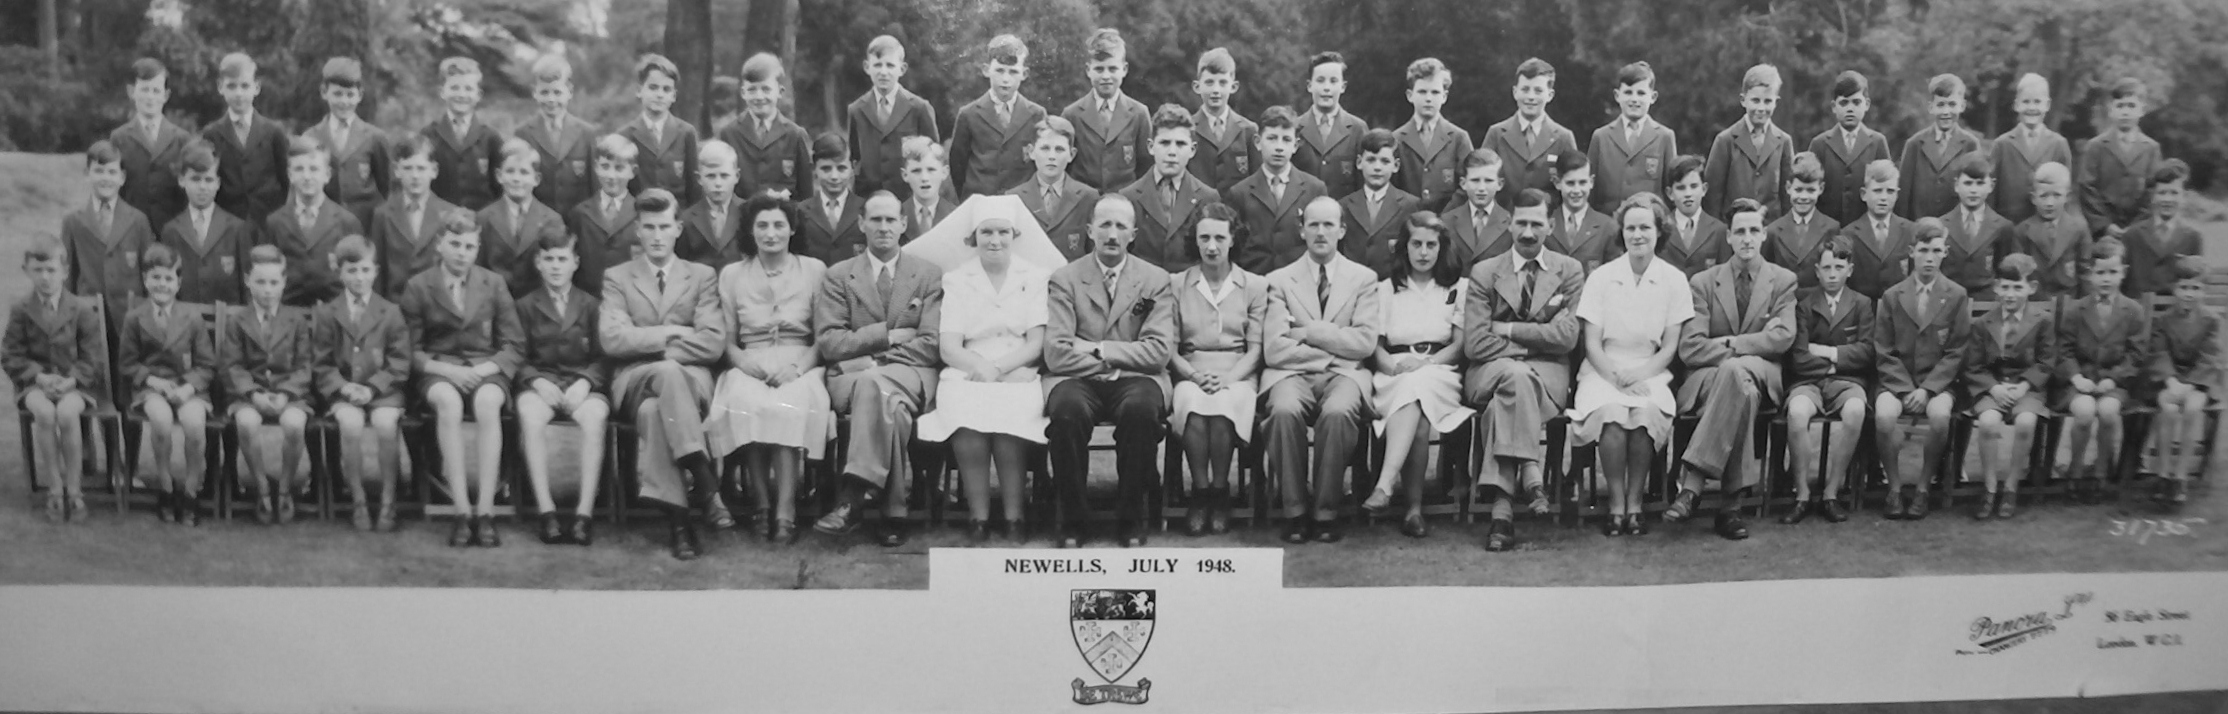 July 1948 School photo